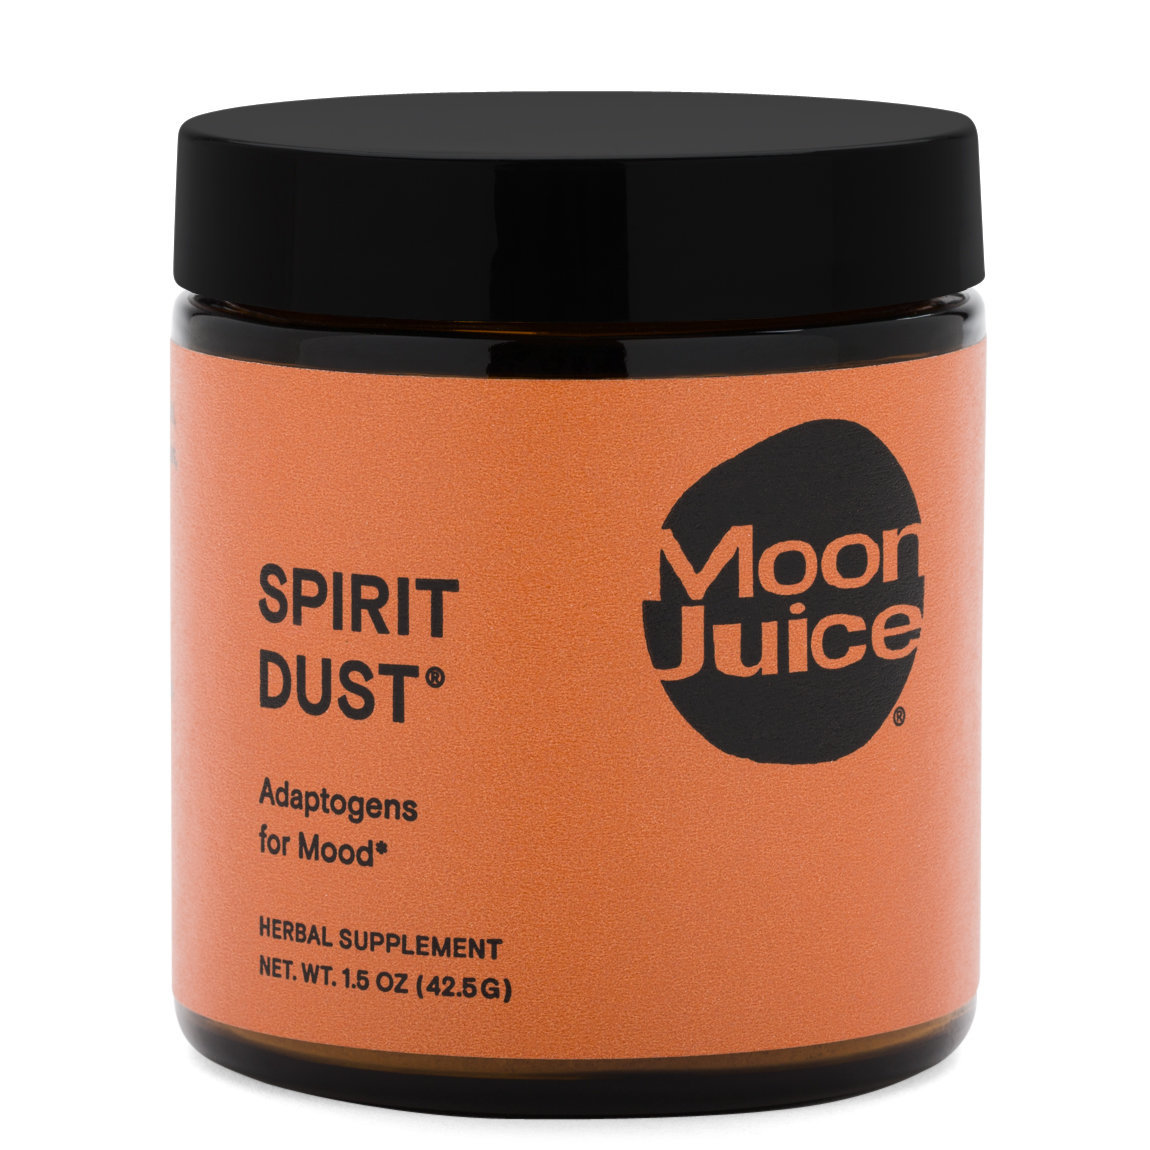 Moon Juice Spirit Dust product swatch.